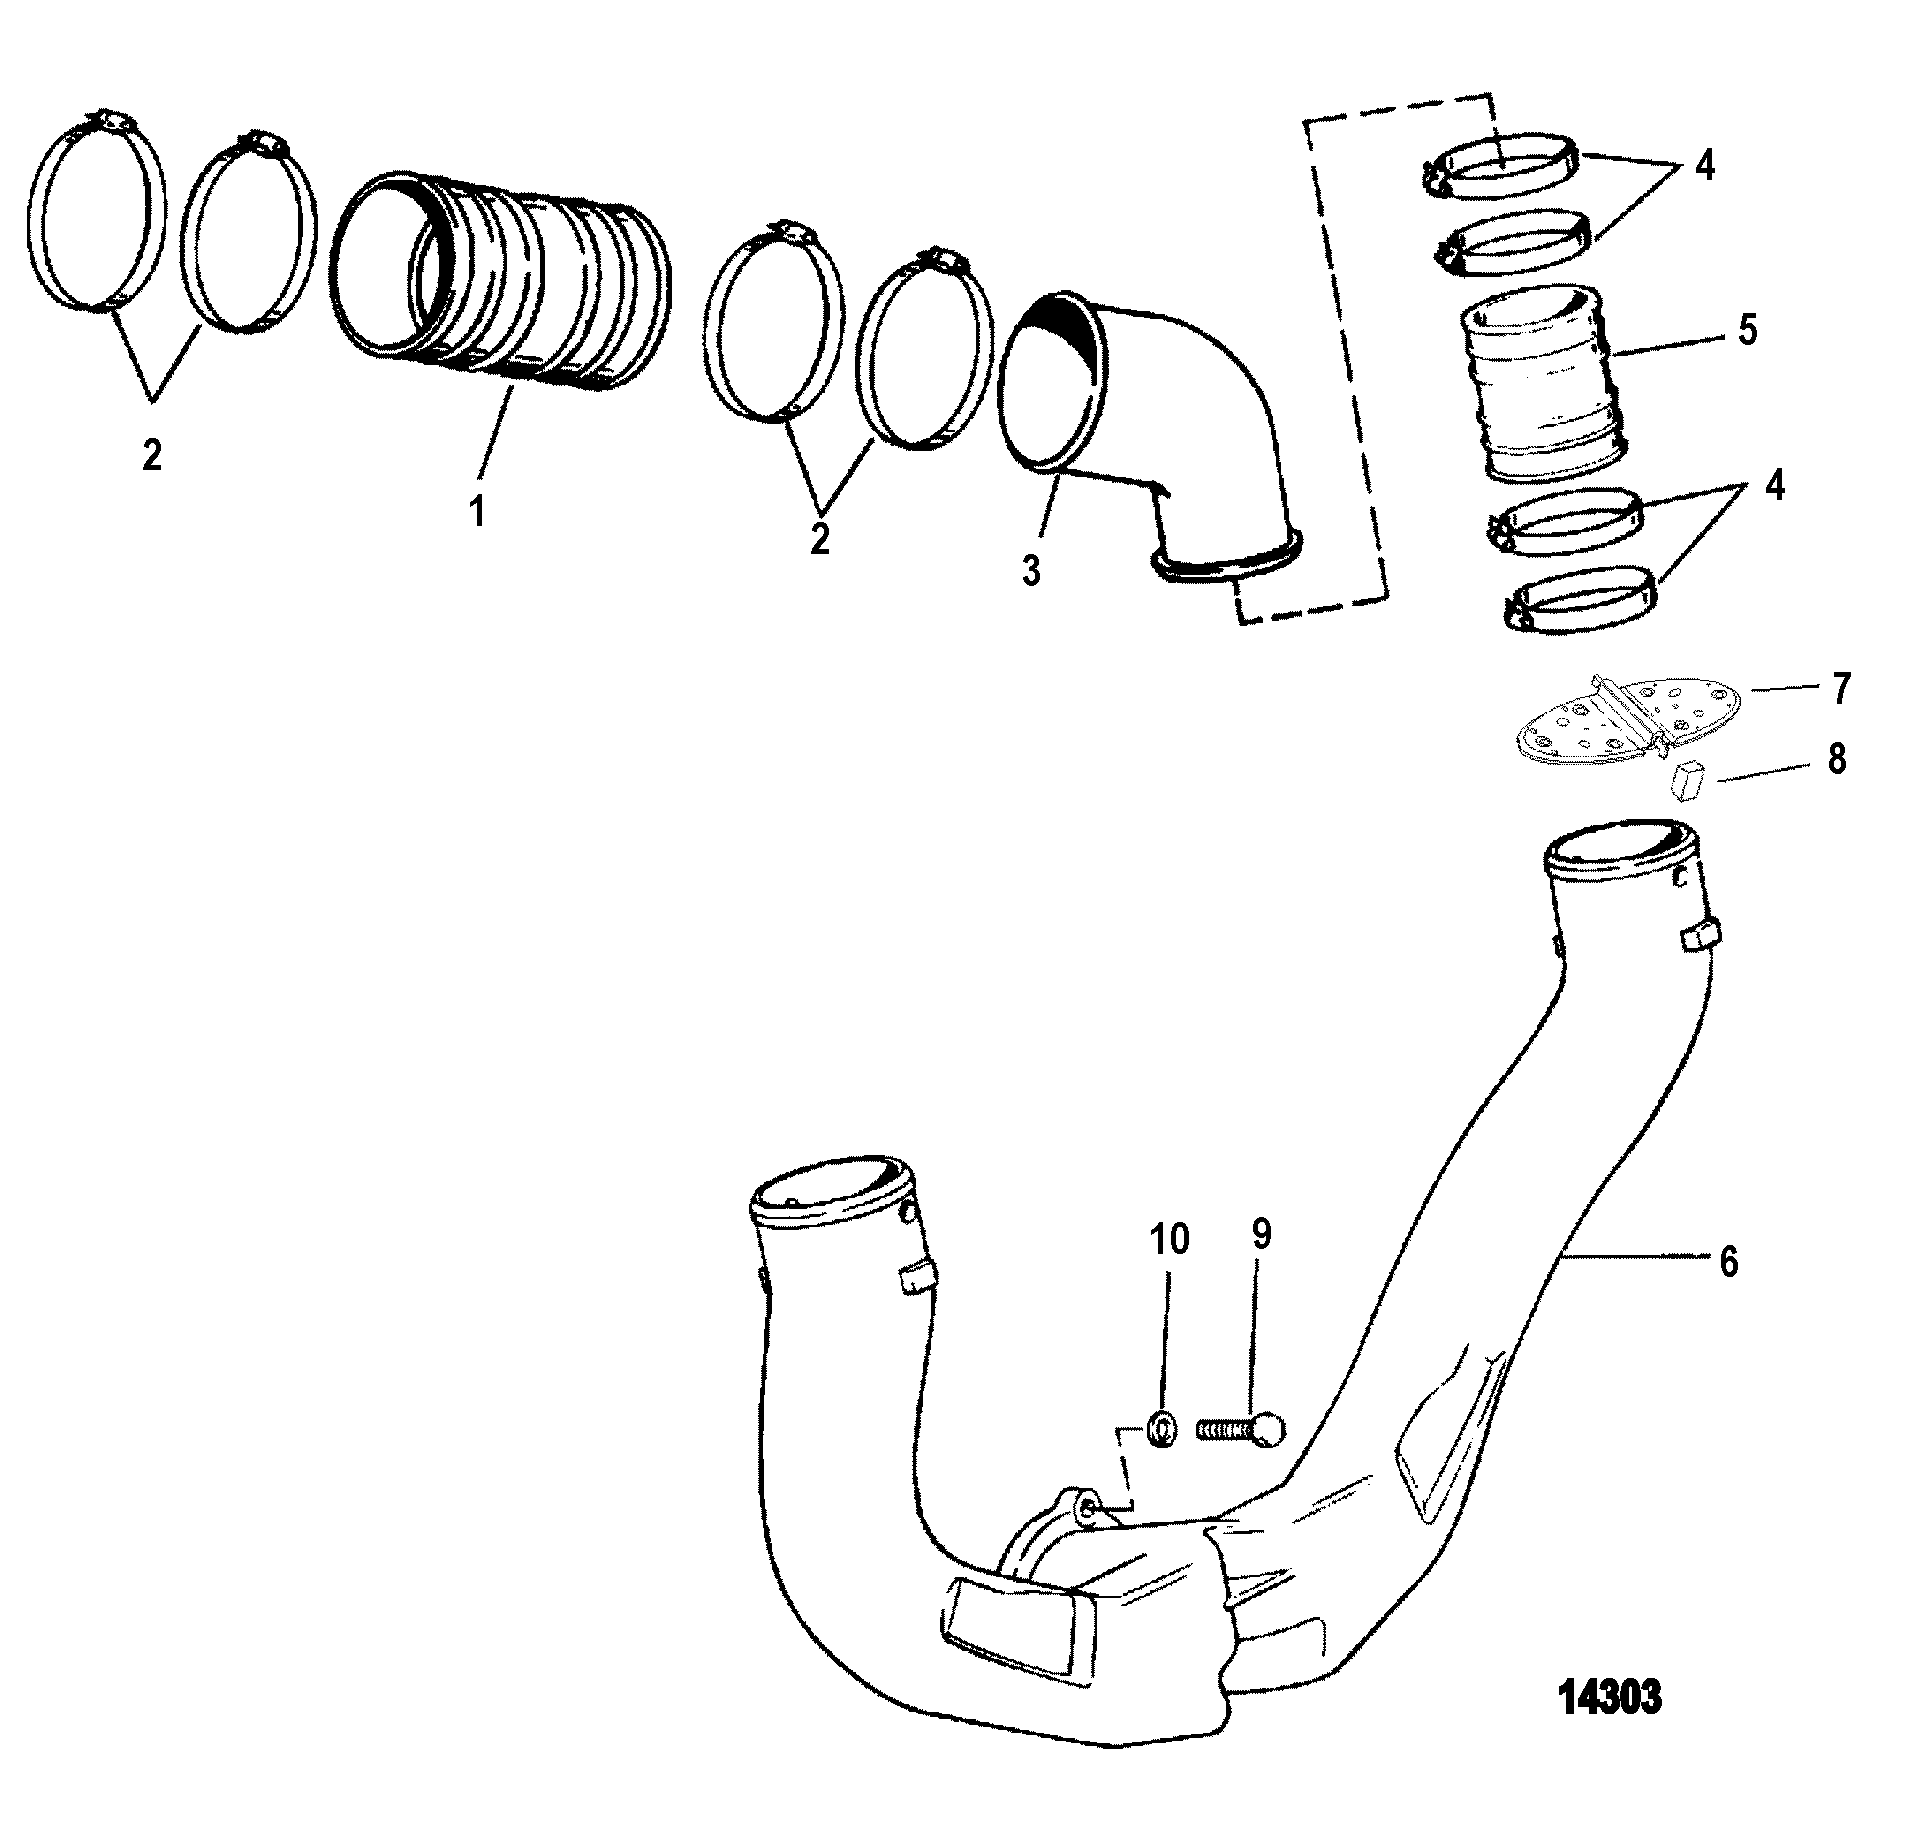 Exhaust System For Mercruiser 4 3l 4 3lx Alpha One Engine